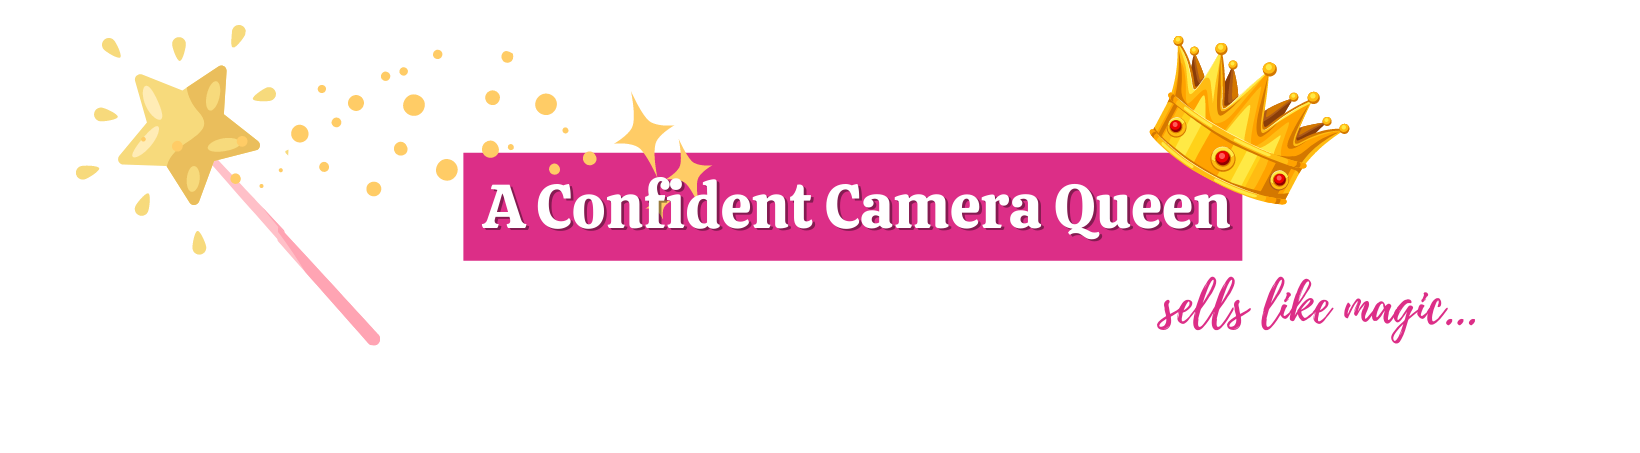 get confident on camera to sell